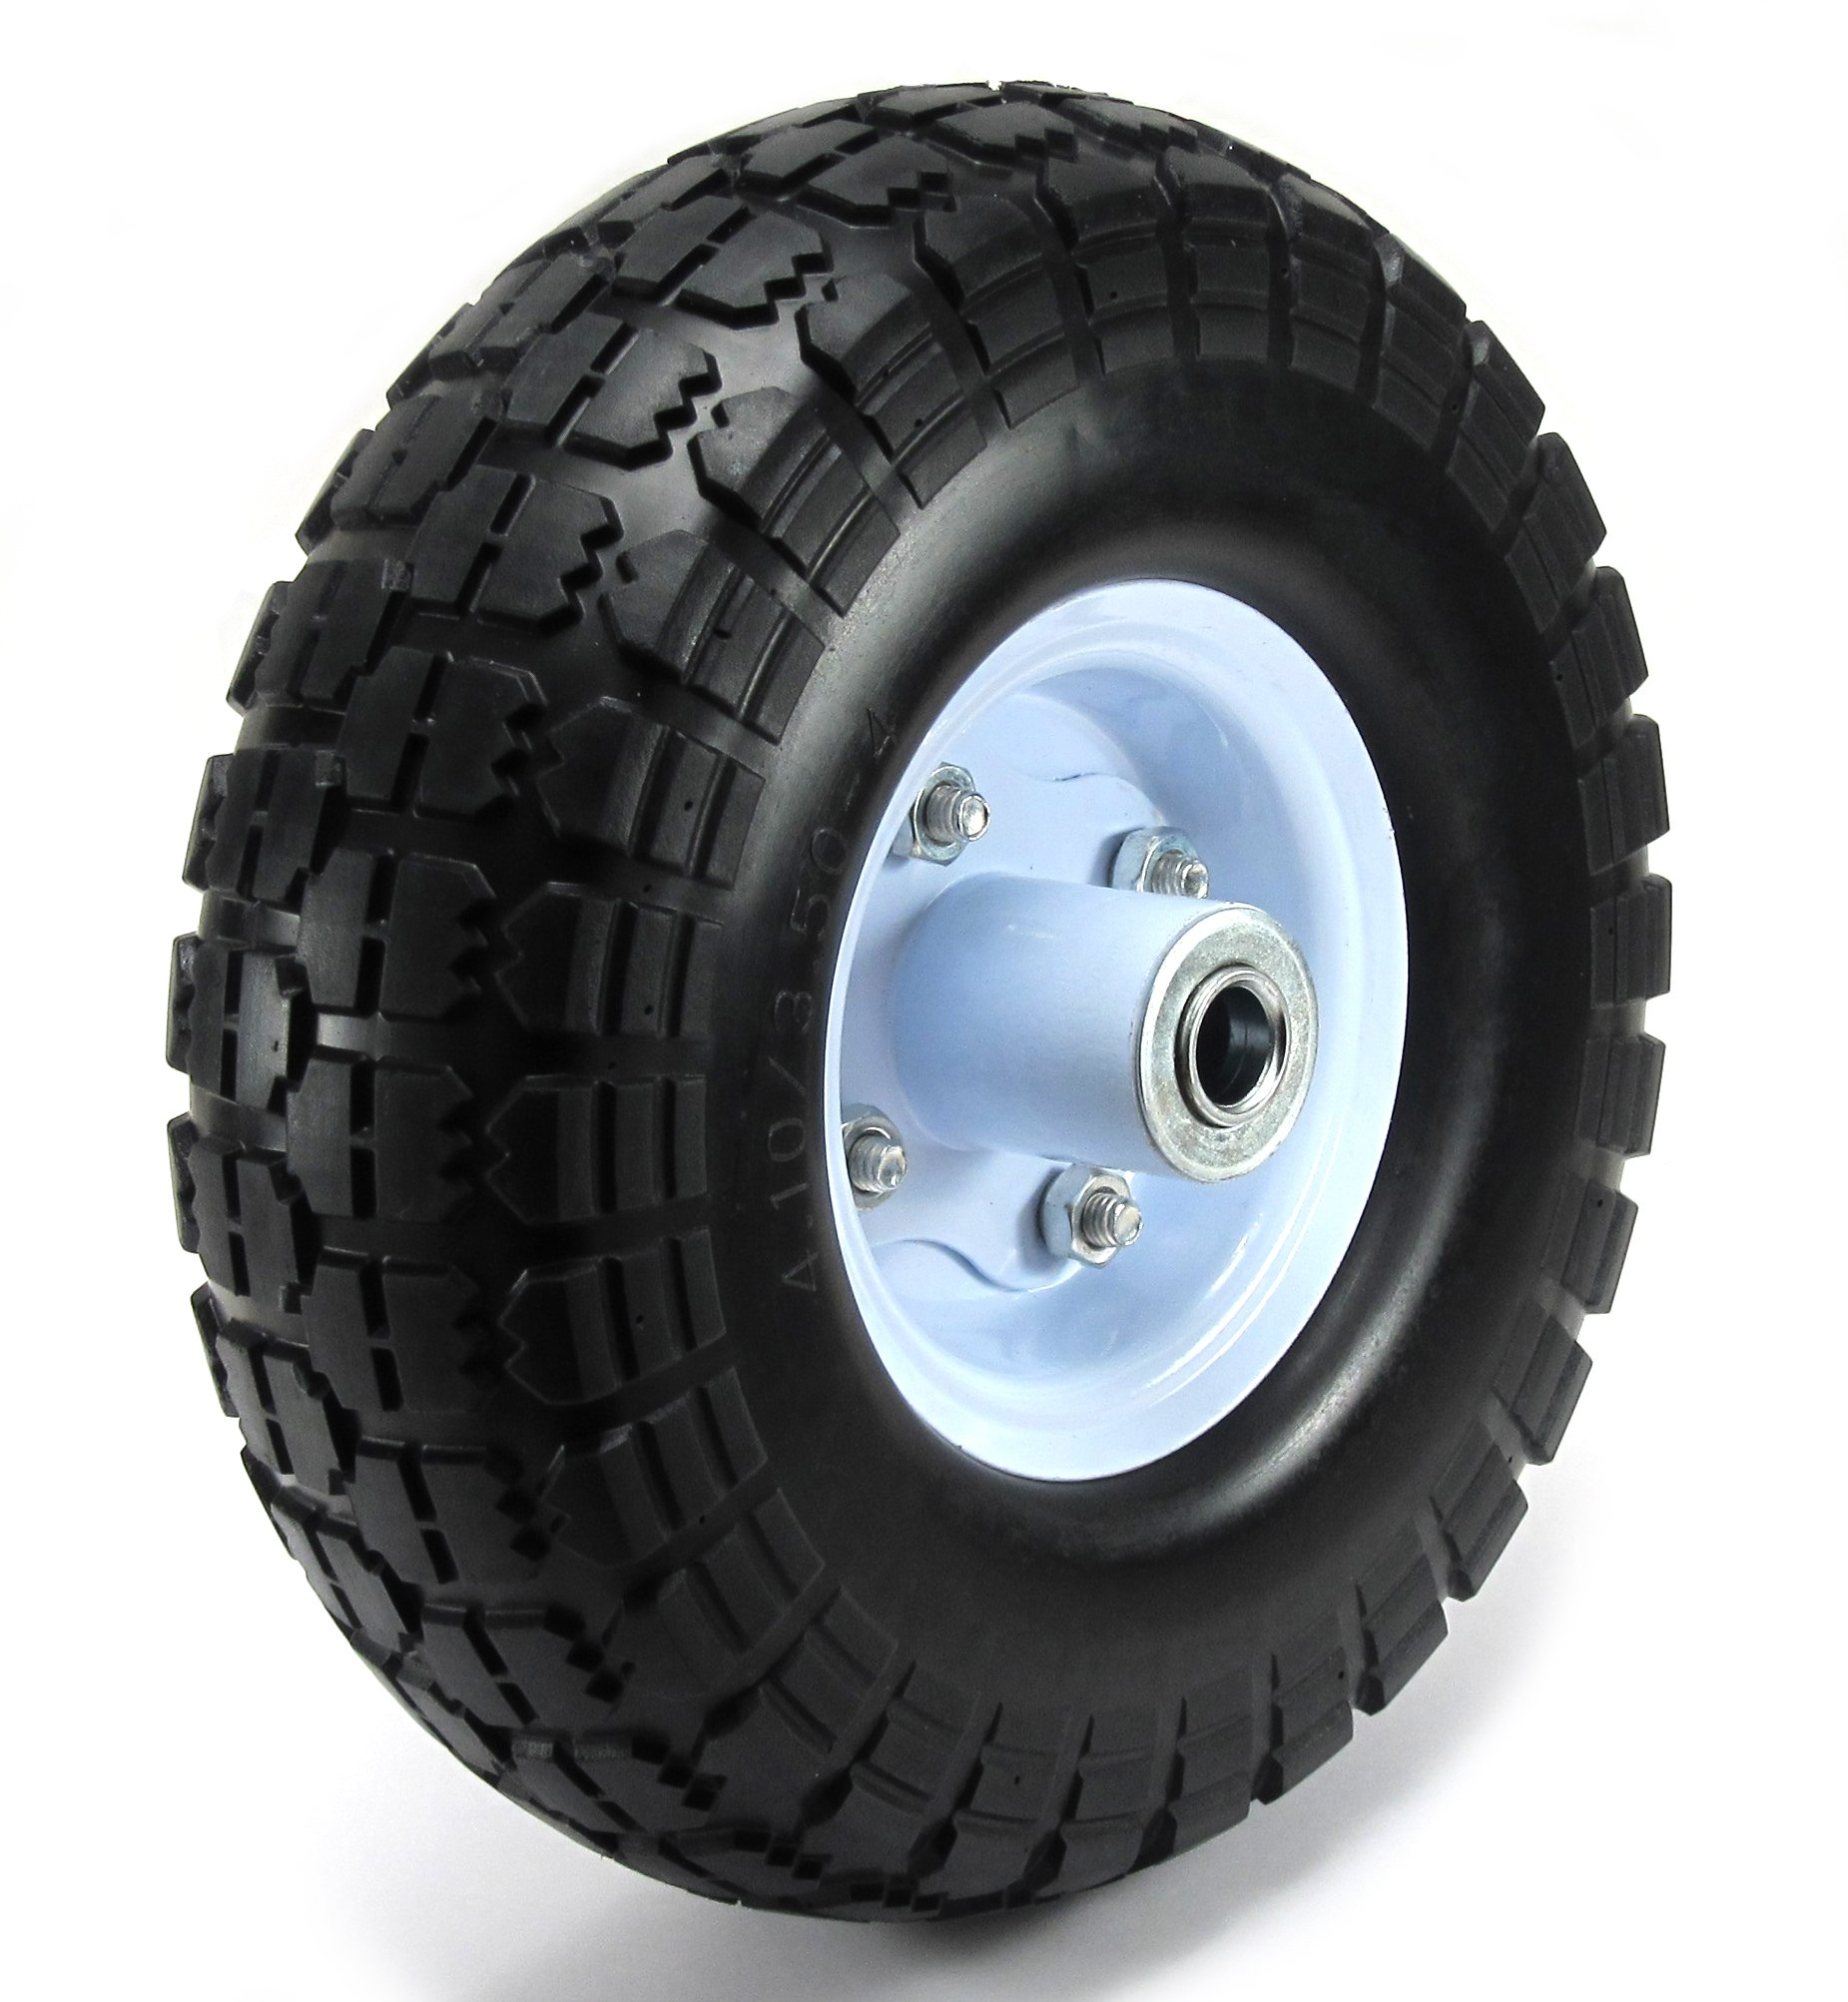 "Elitexion 10"" Flat Free Tire Wheel for Dolly Hand Truck with 5/8"" Center Shaft Hole"